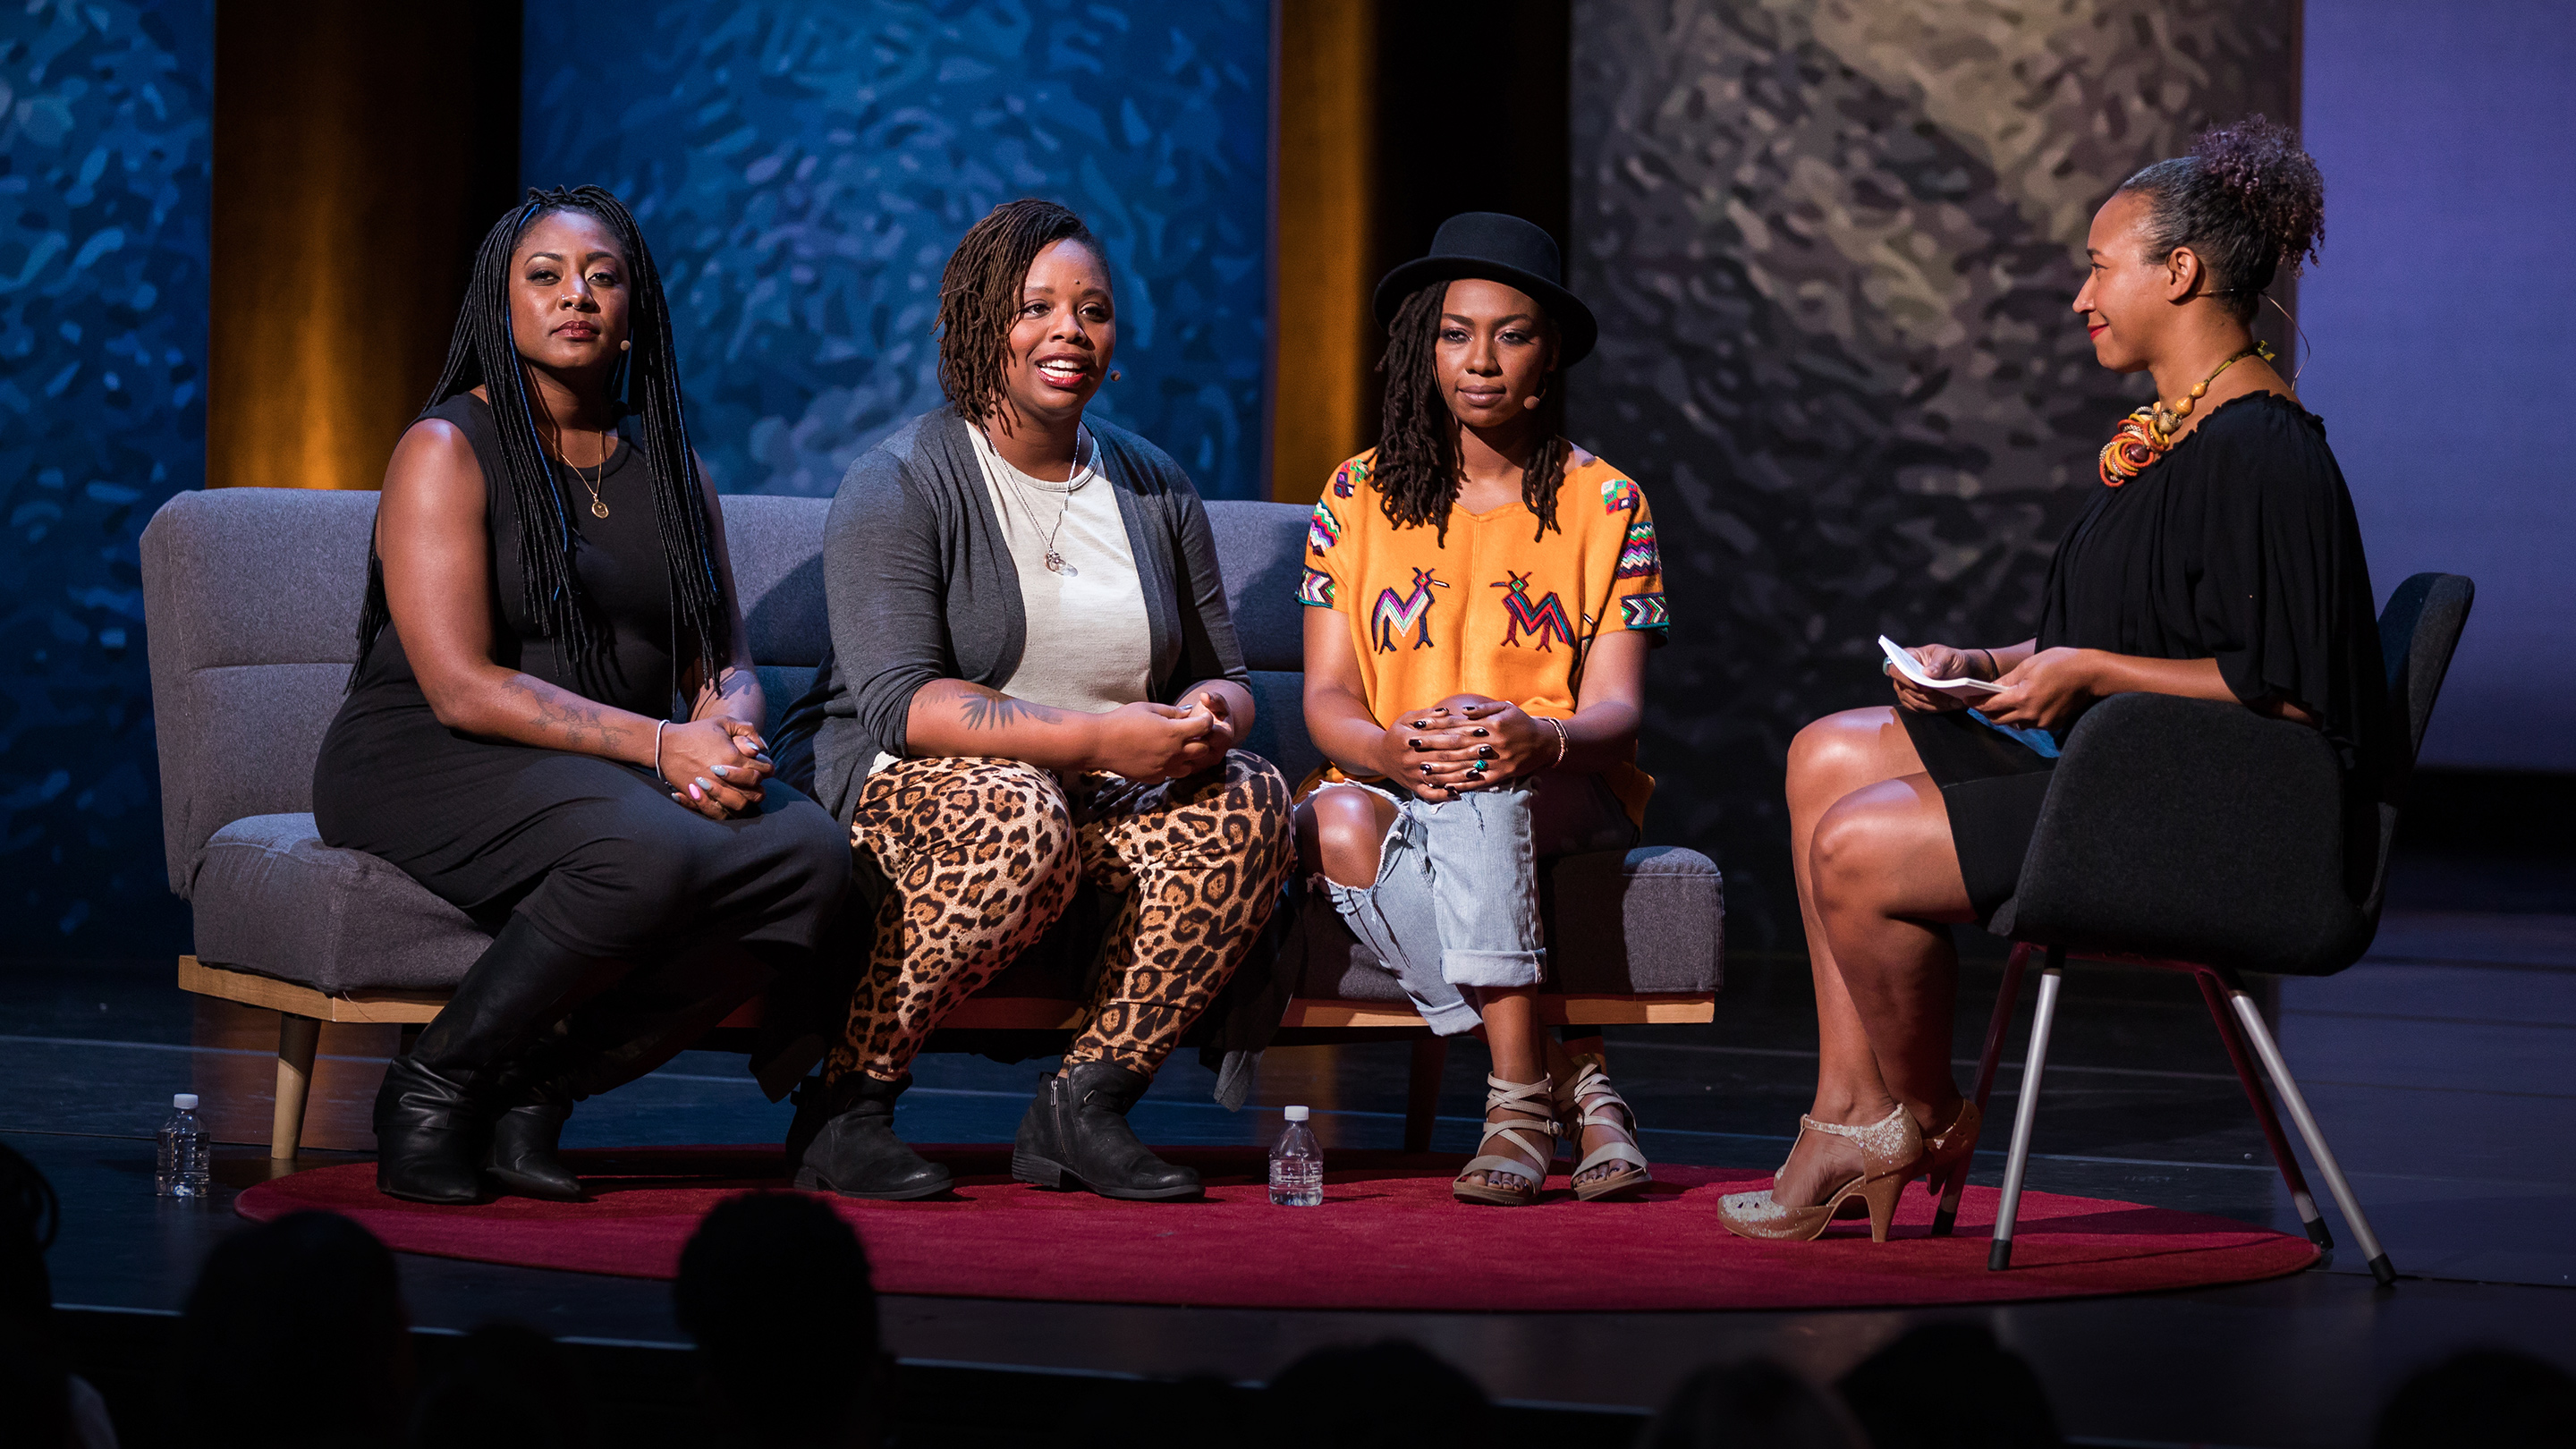 An interview with the founders of Black Lives Matter